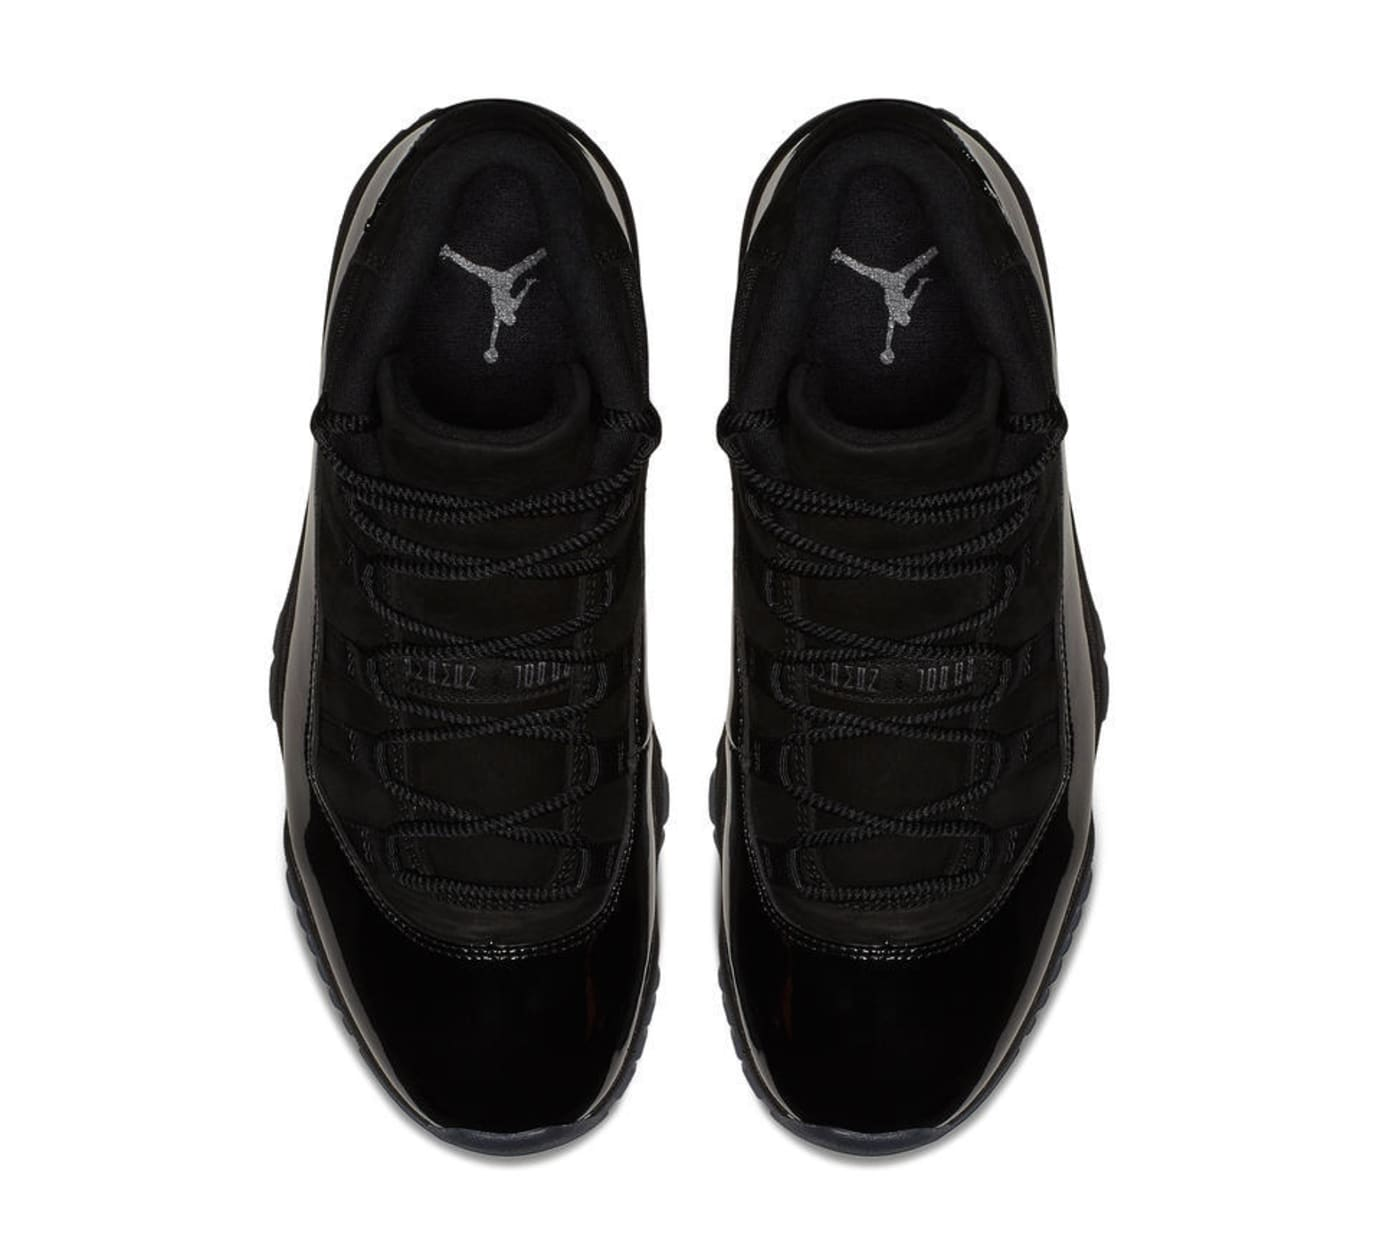 ac2ce7413885f2 Image via Nike Air Jordan 11  Cap and Gown  378037-005 (Top)